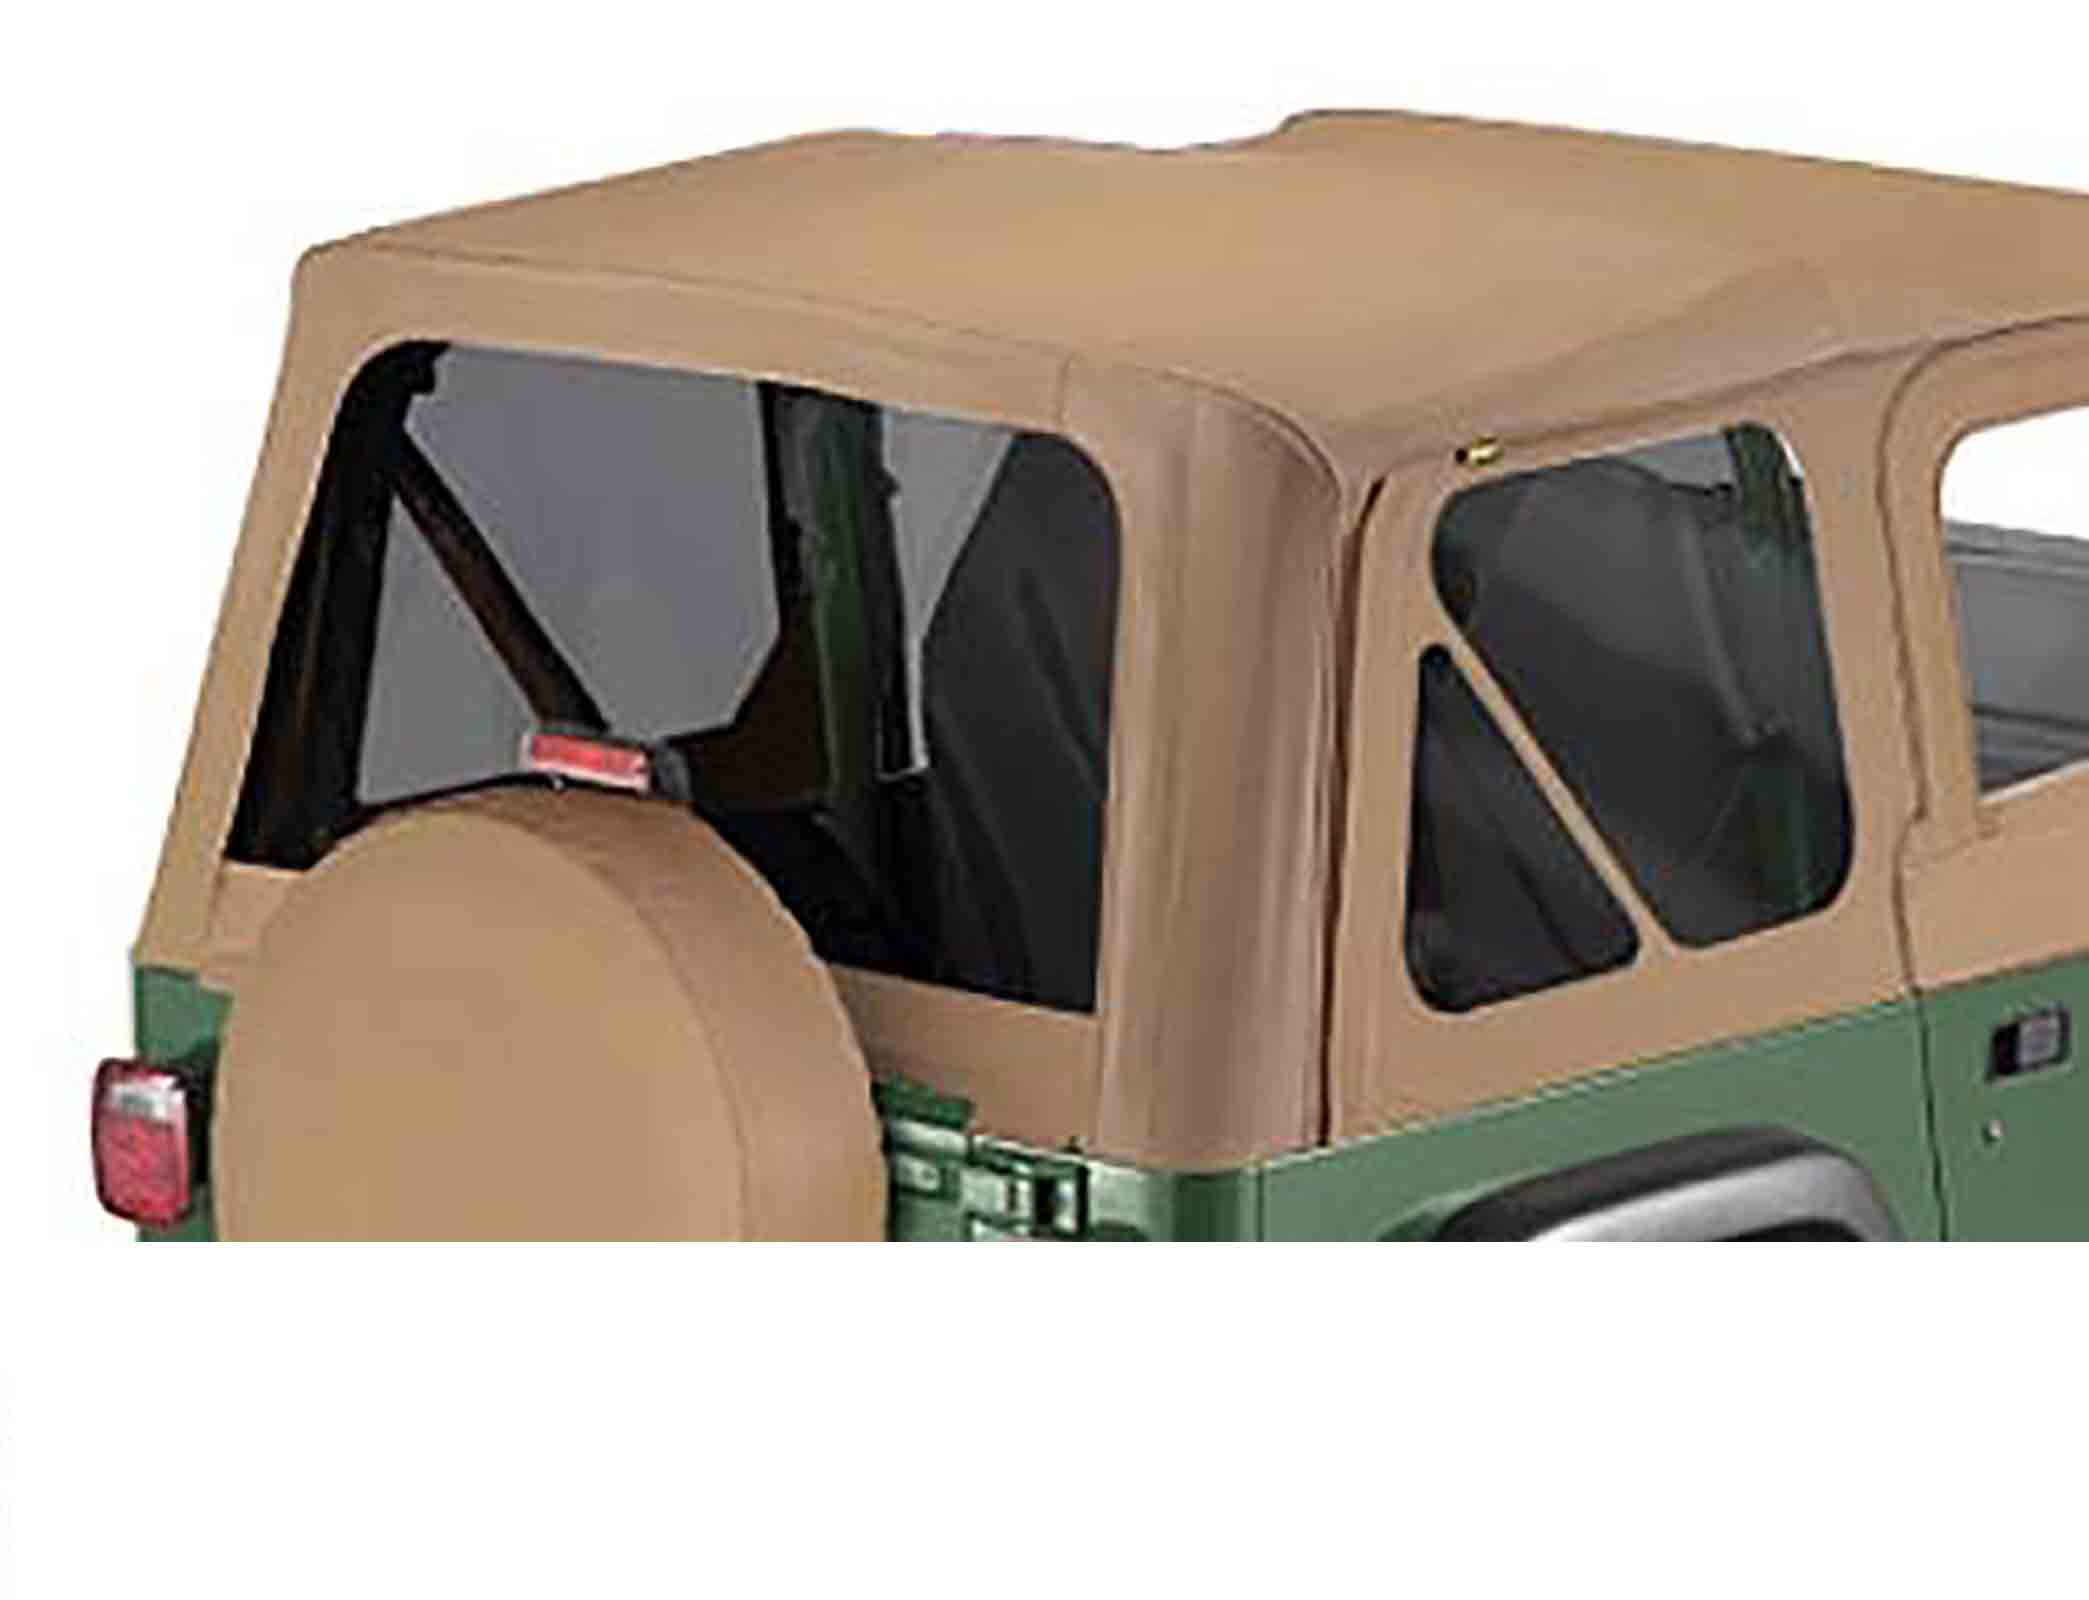 Verti scuri wrangler tj 96 02  adatto per 51121 softtop soft top capottina ricambio e softtop soft to